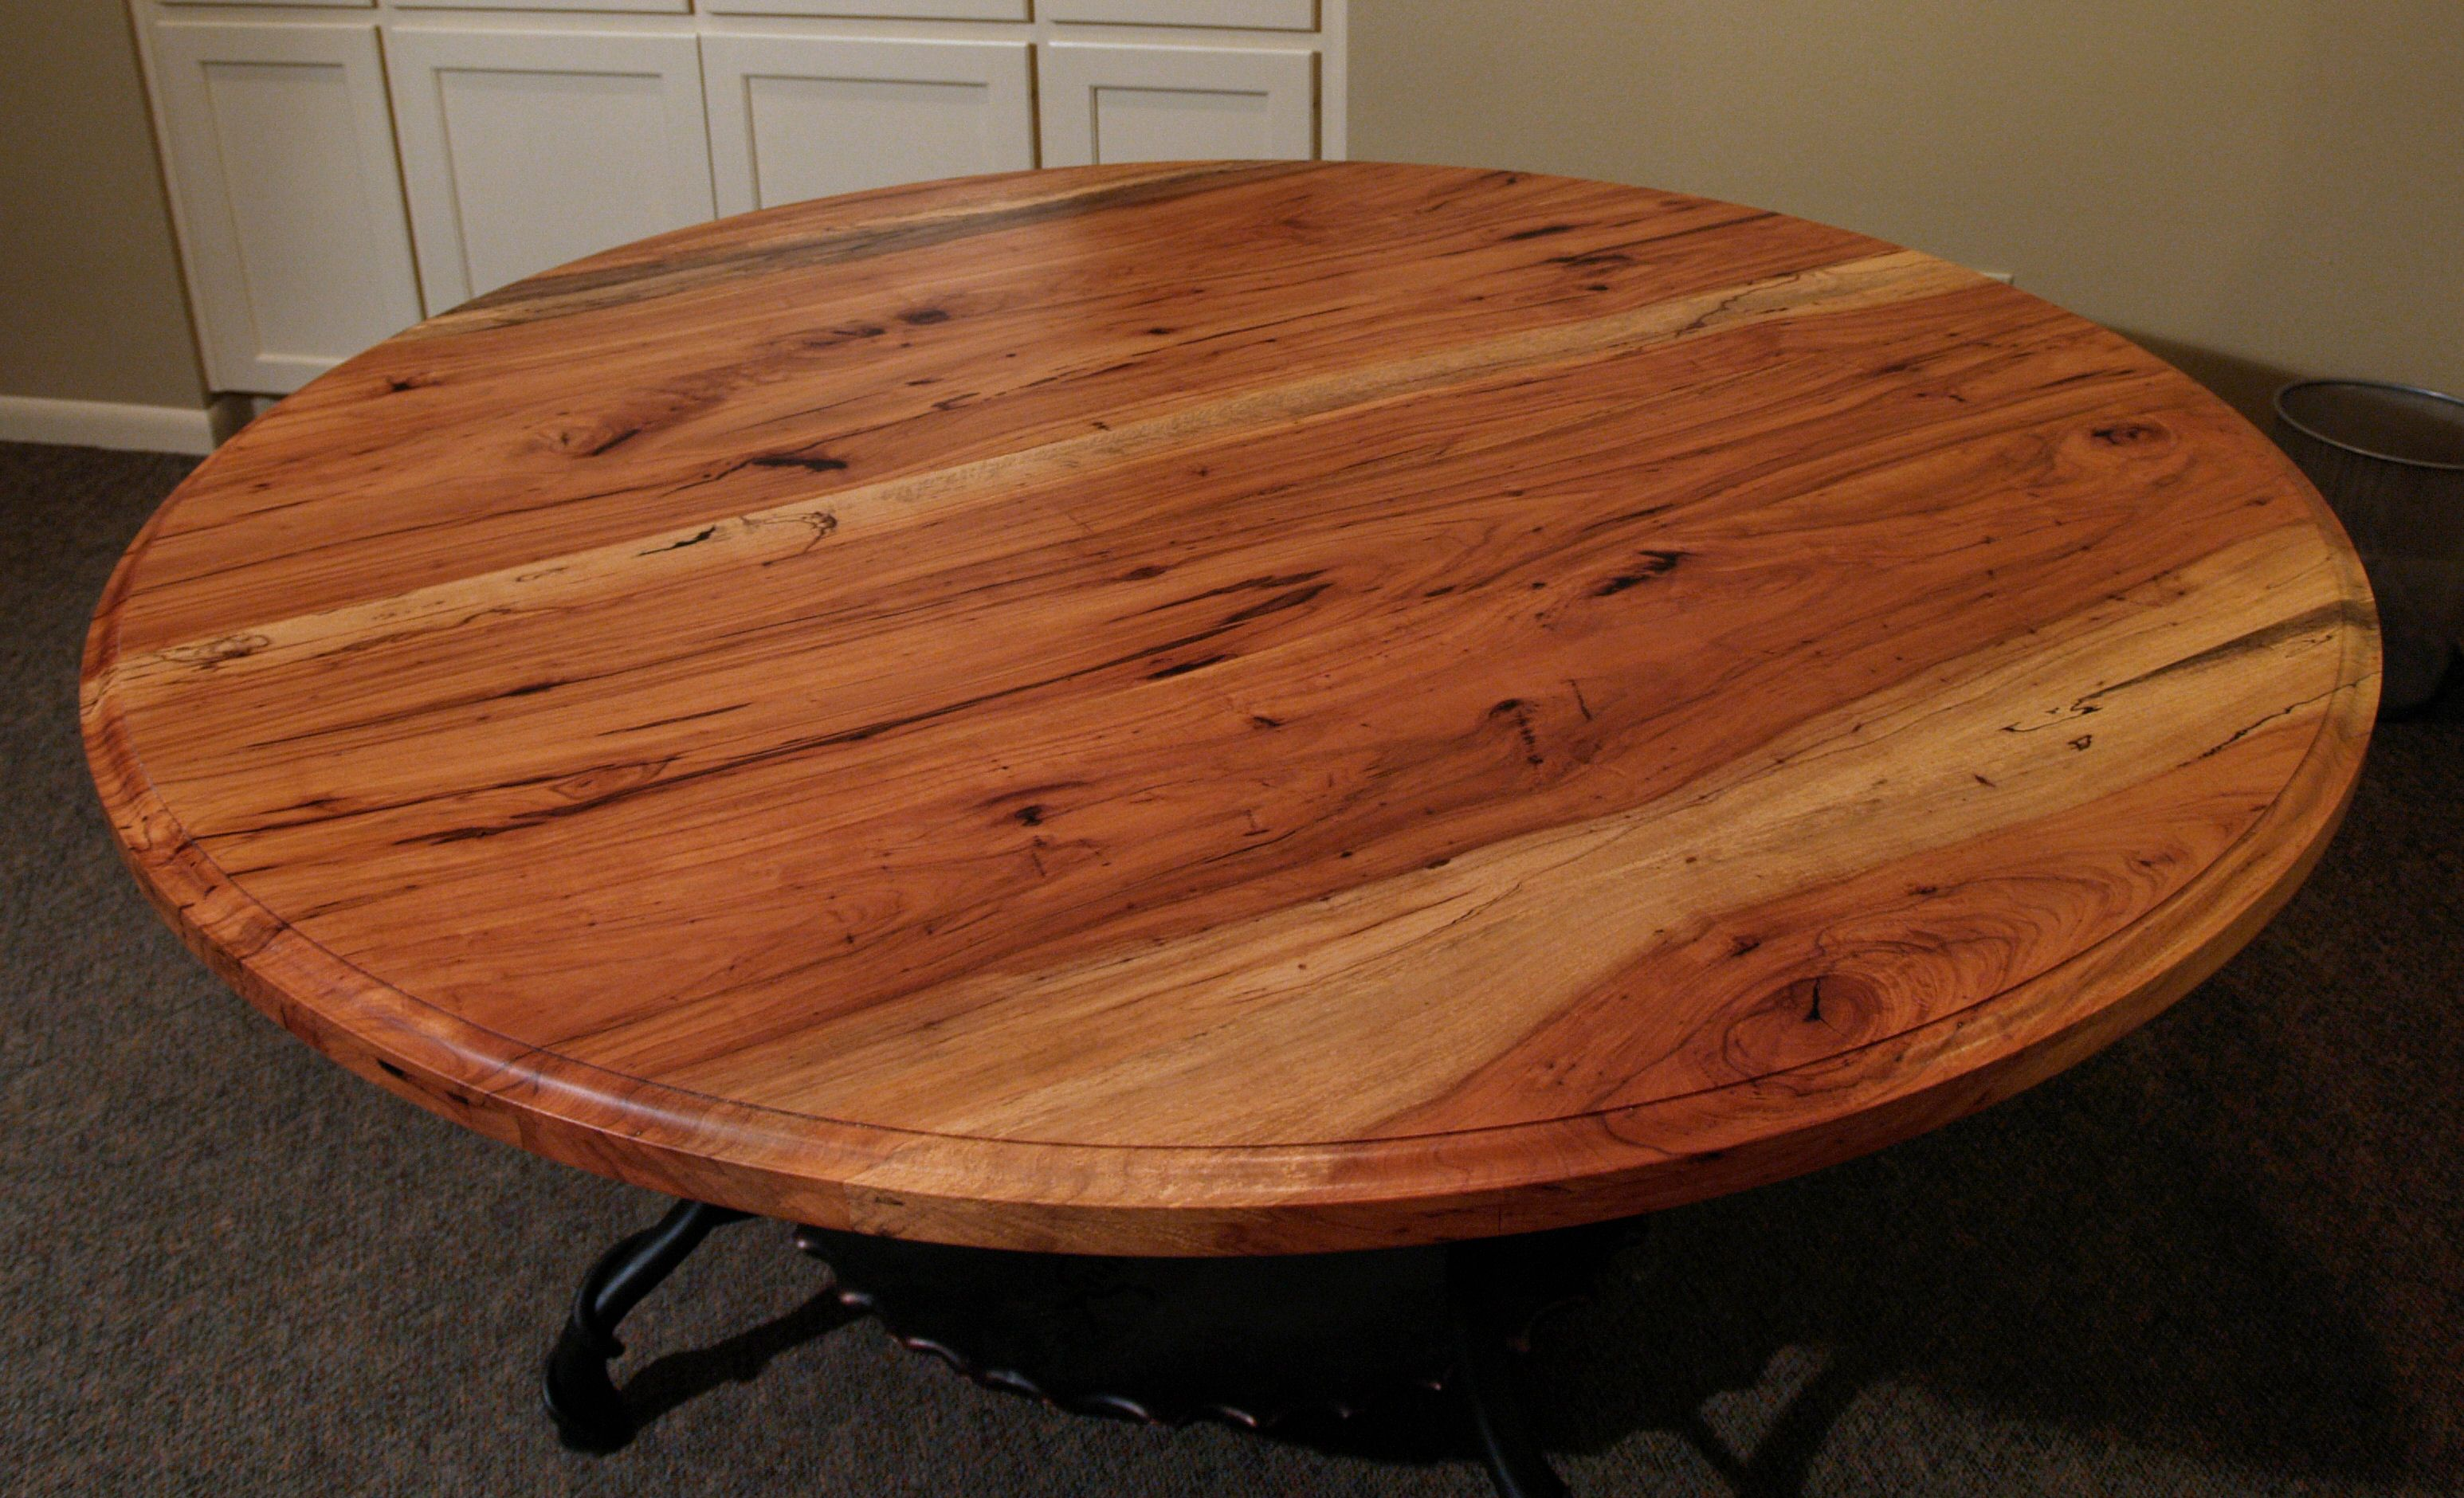 Spalted Pecan face grain custom wood table top. Spalted Pecan Wood Countertop Photo Gallery  by DeVos Custom